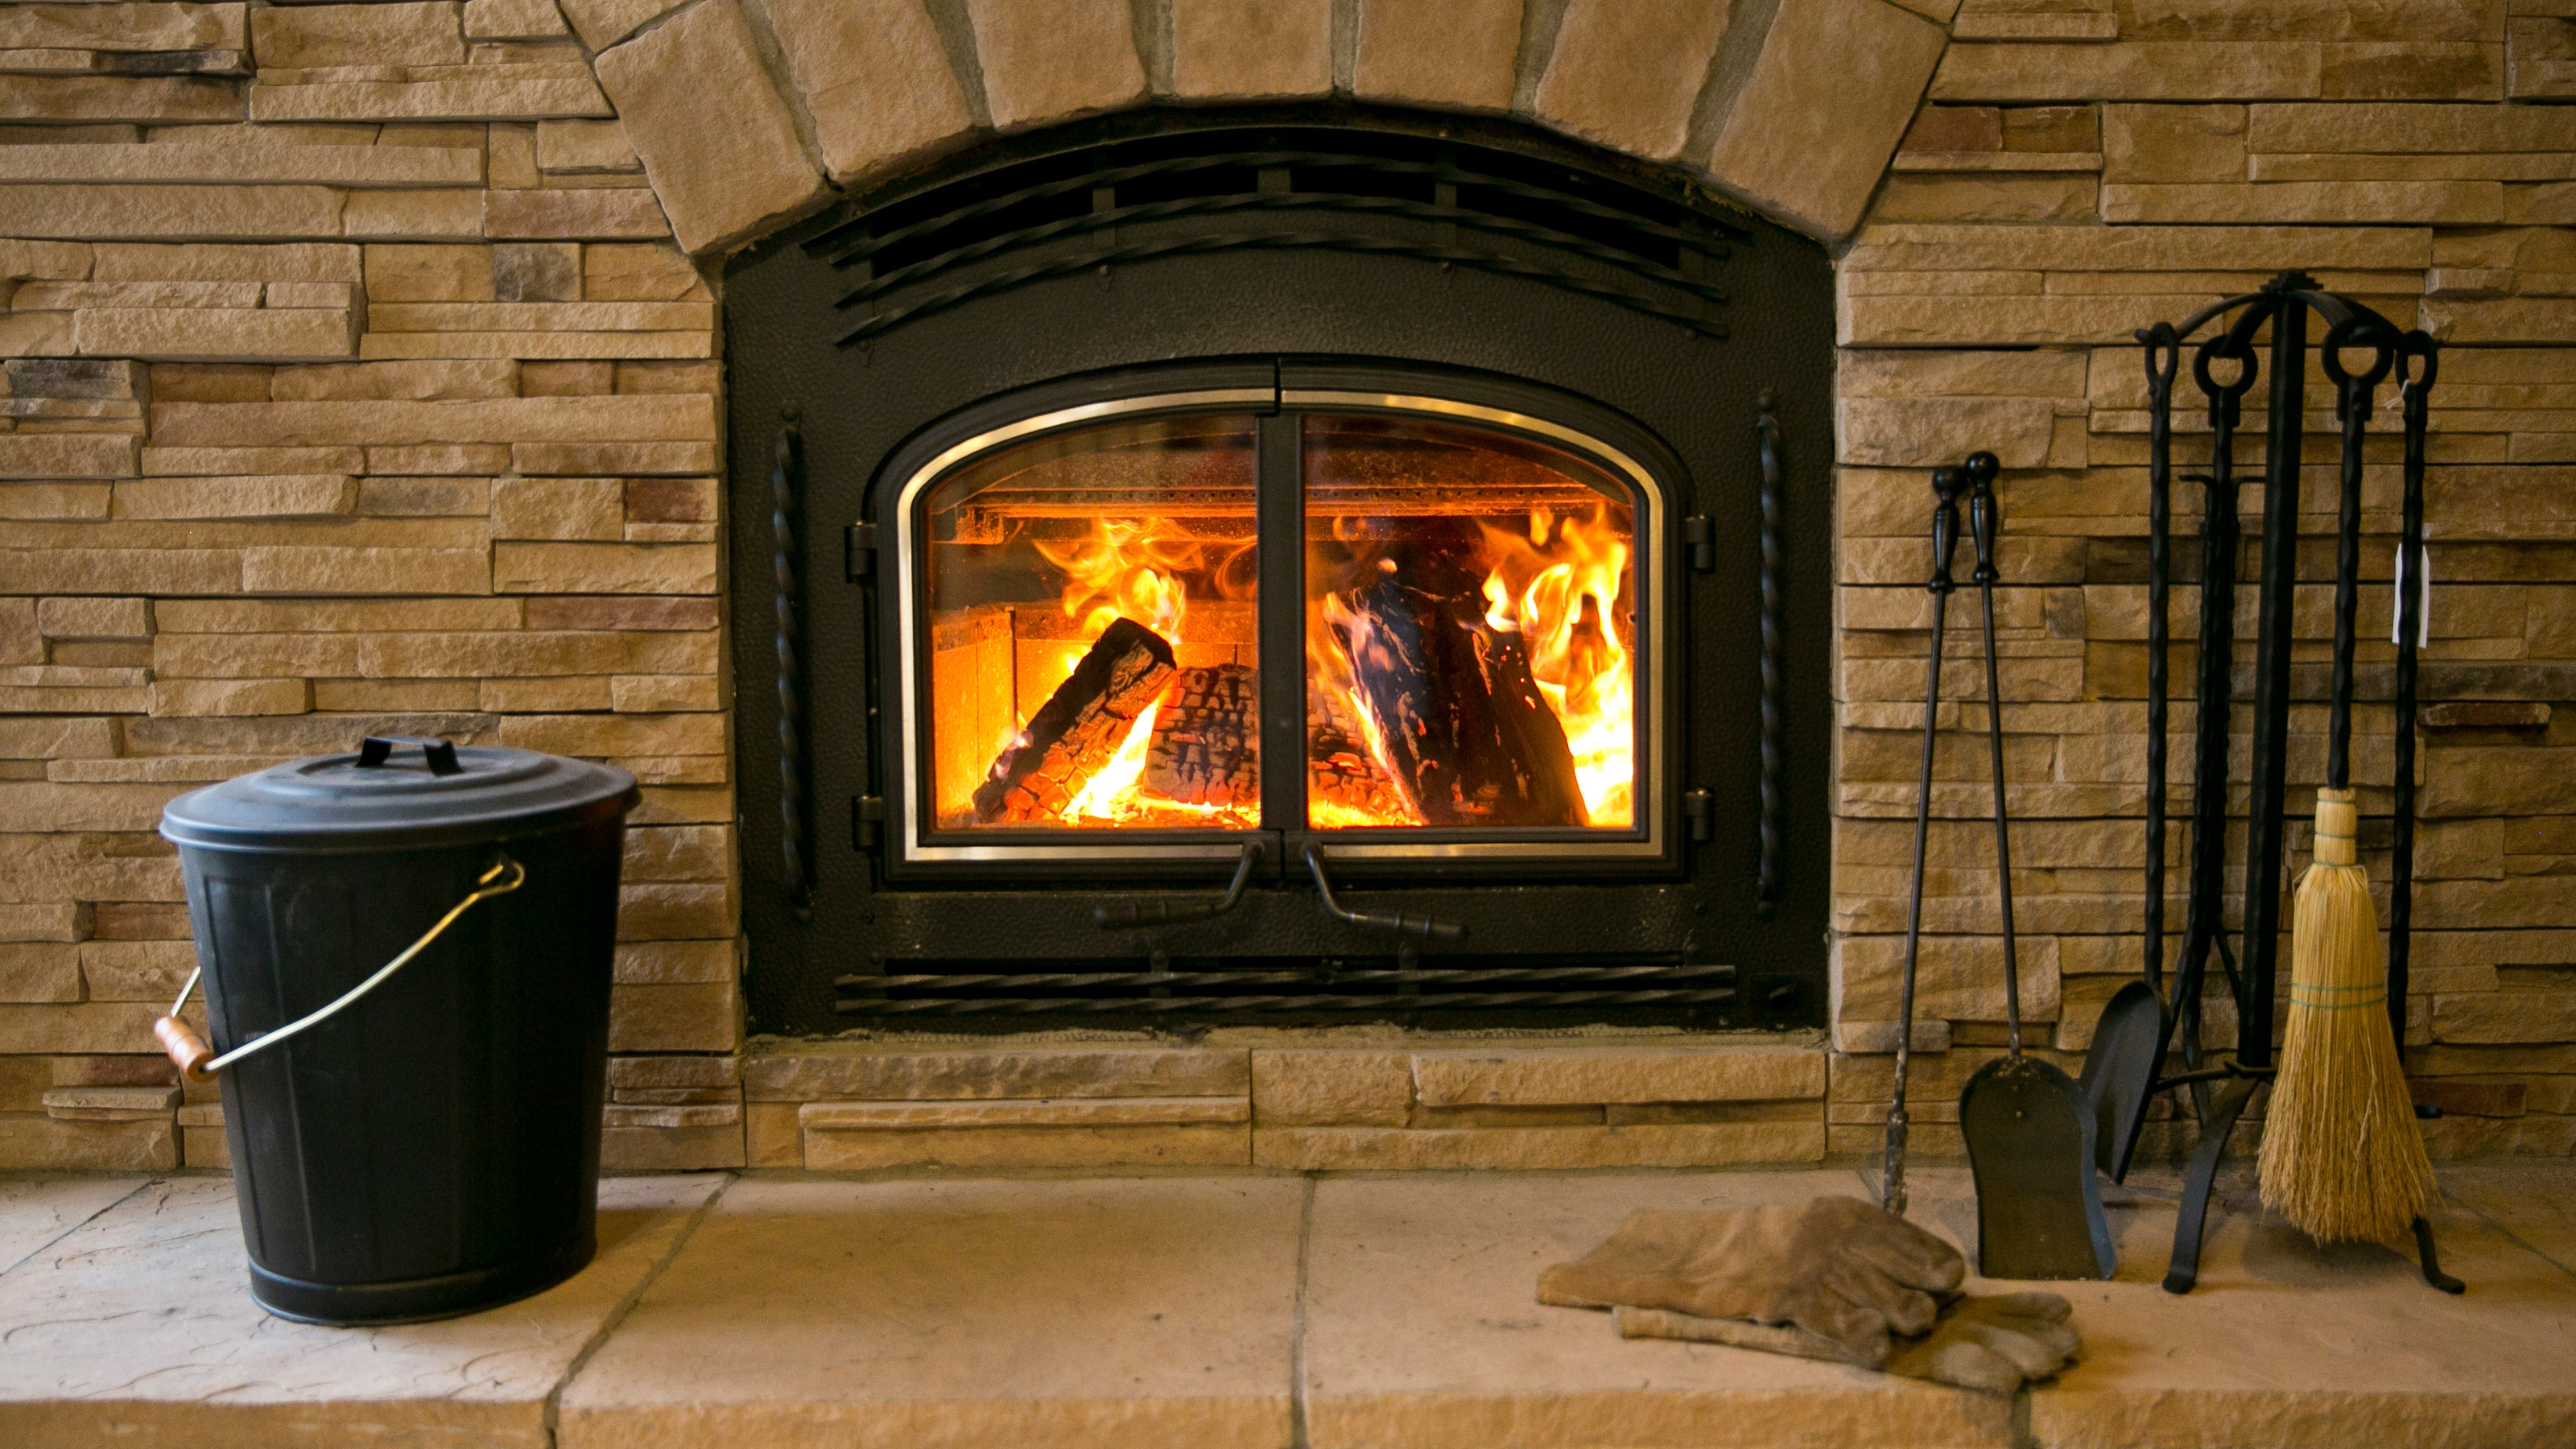 How to Install Gas Fireplace In Existing Chimney Best Of How to Convert A Gas Fireplace to Wood Burning